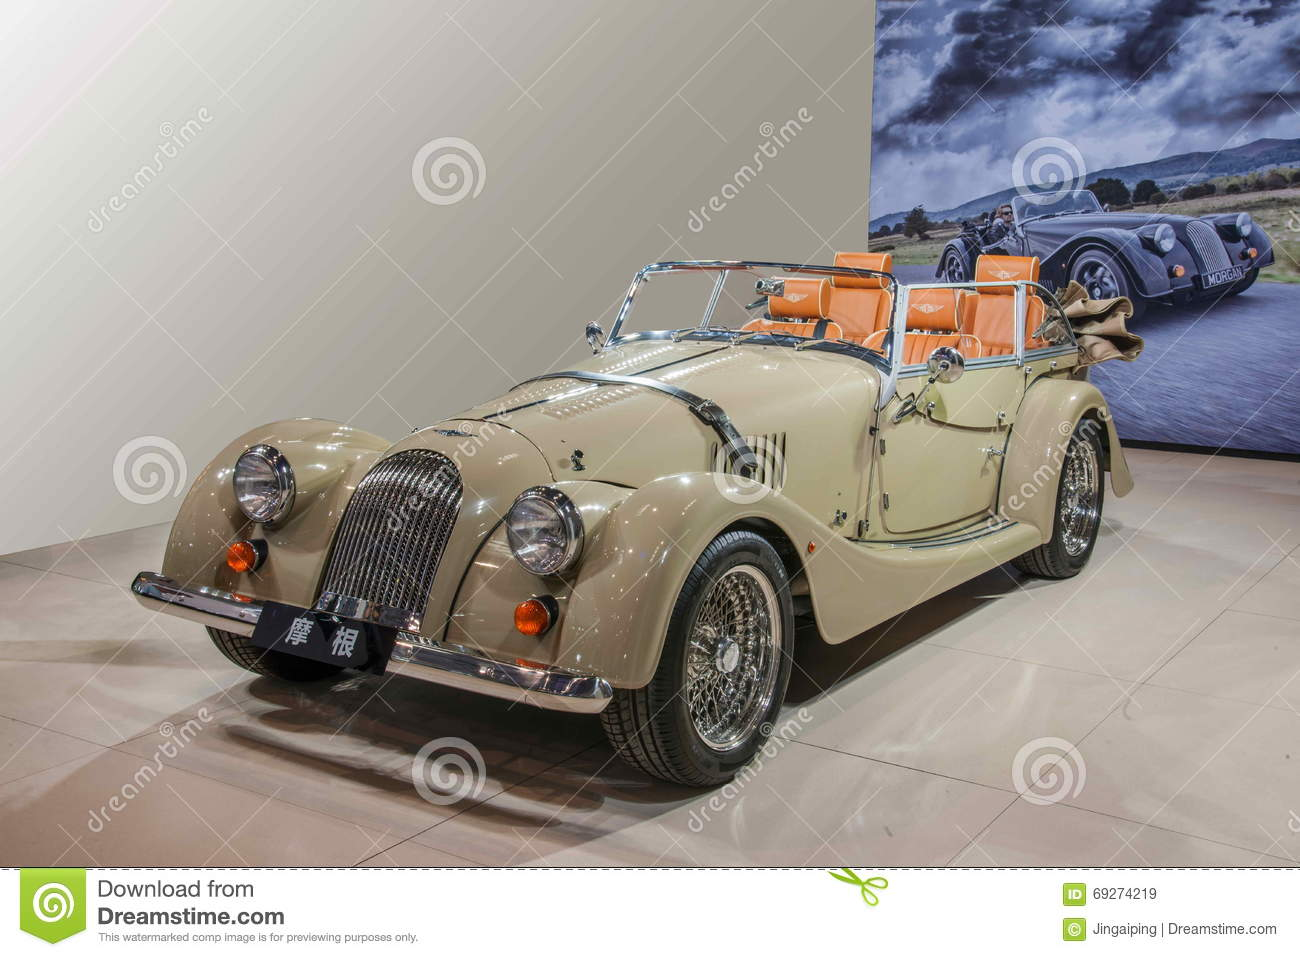 Morgan classic cars editorial stock image. Image of cars - 69274219